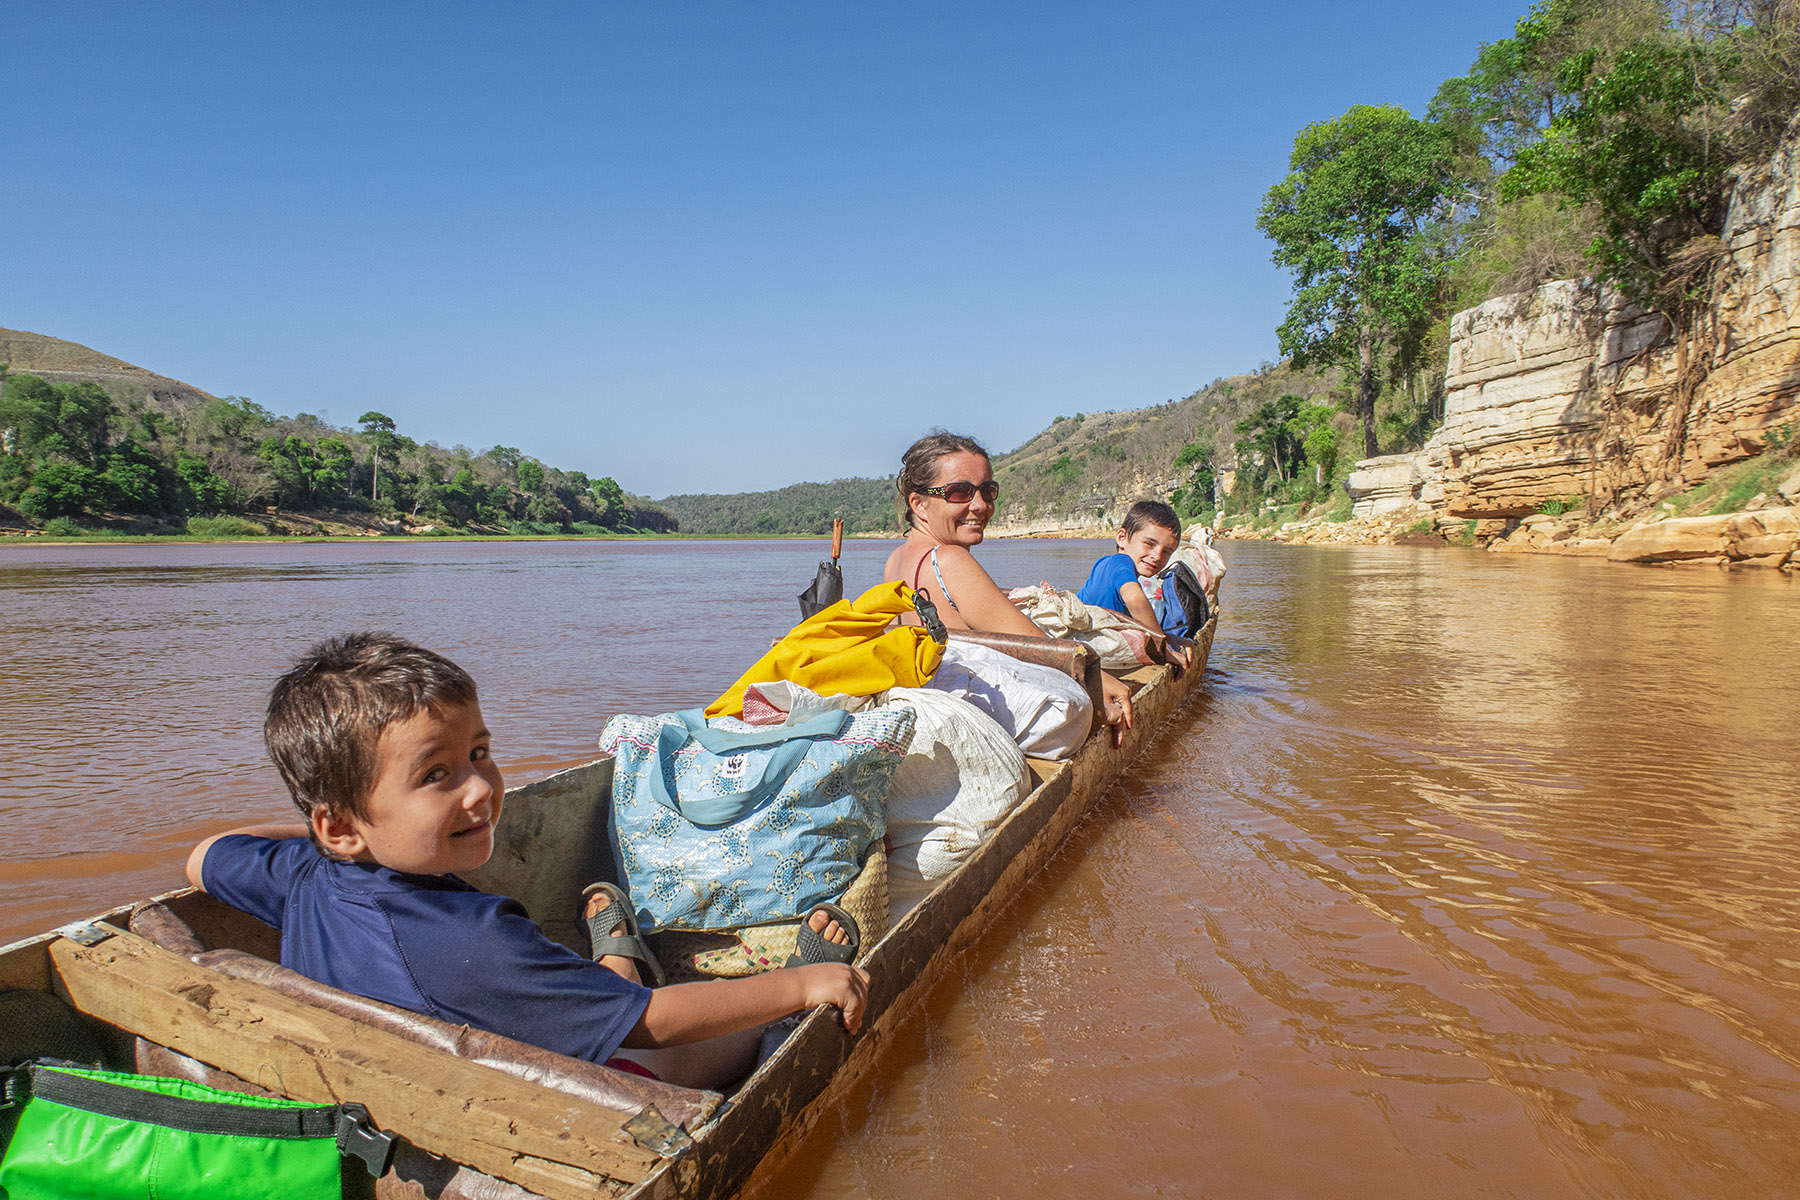 """Just before we left Madagascar, we took a three-day canoe trip to get to the """"Avenue of Baobabs"""".  It was a great time for our family and a great way to say goodbye to the country that was our home for so many years!"""